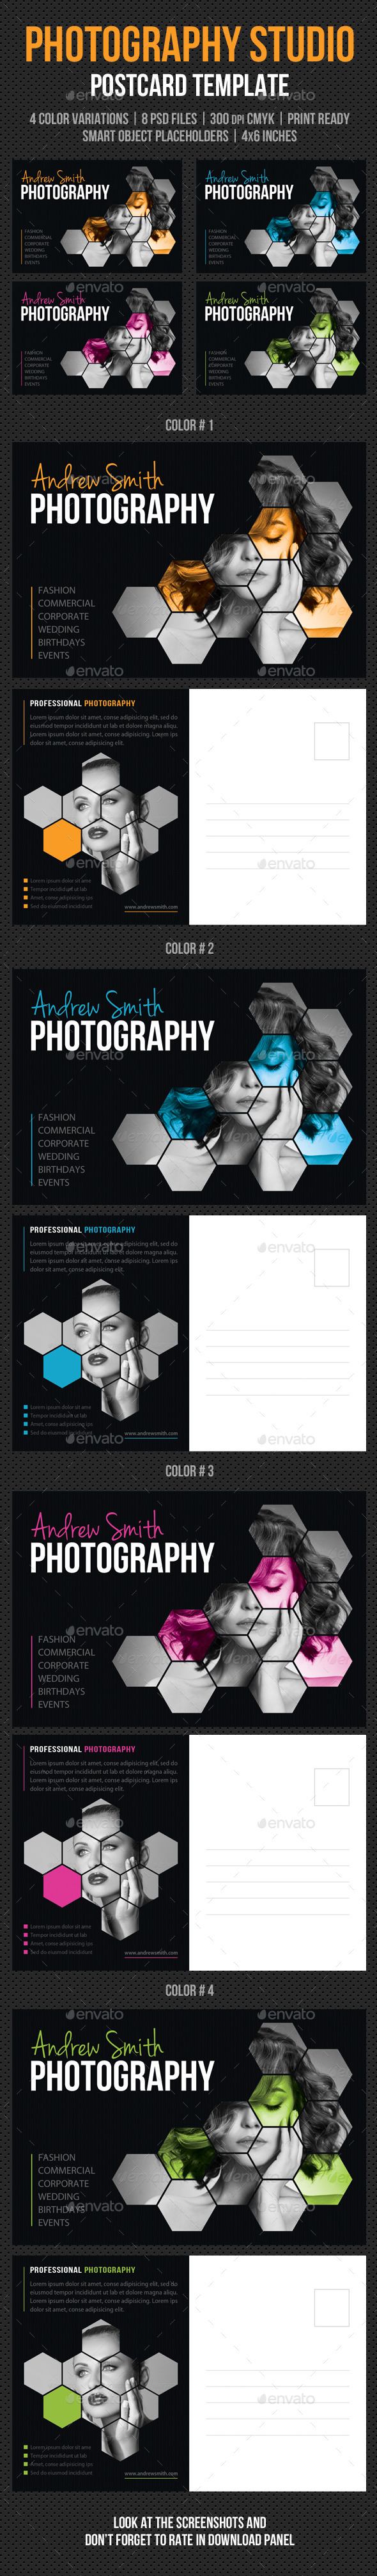 Photography Studio Postcard Template V01 - Cards & Invites Print Templates